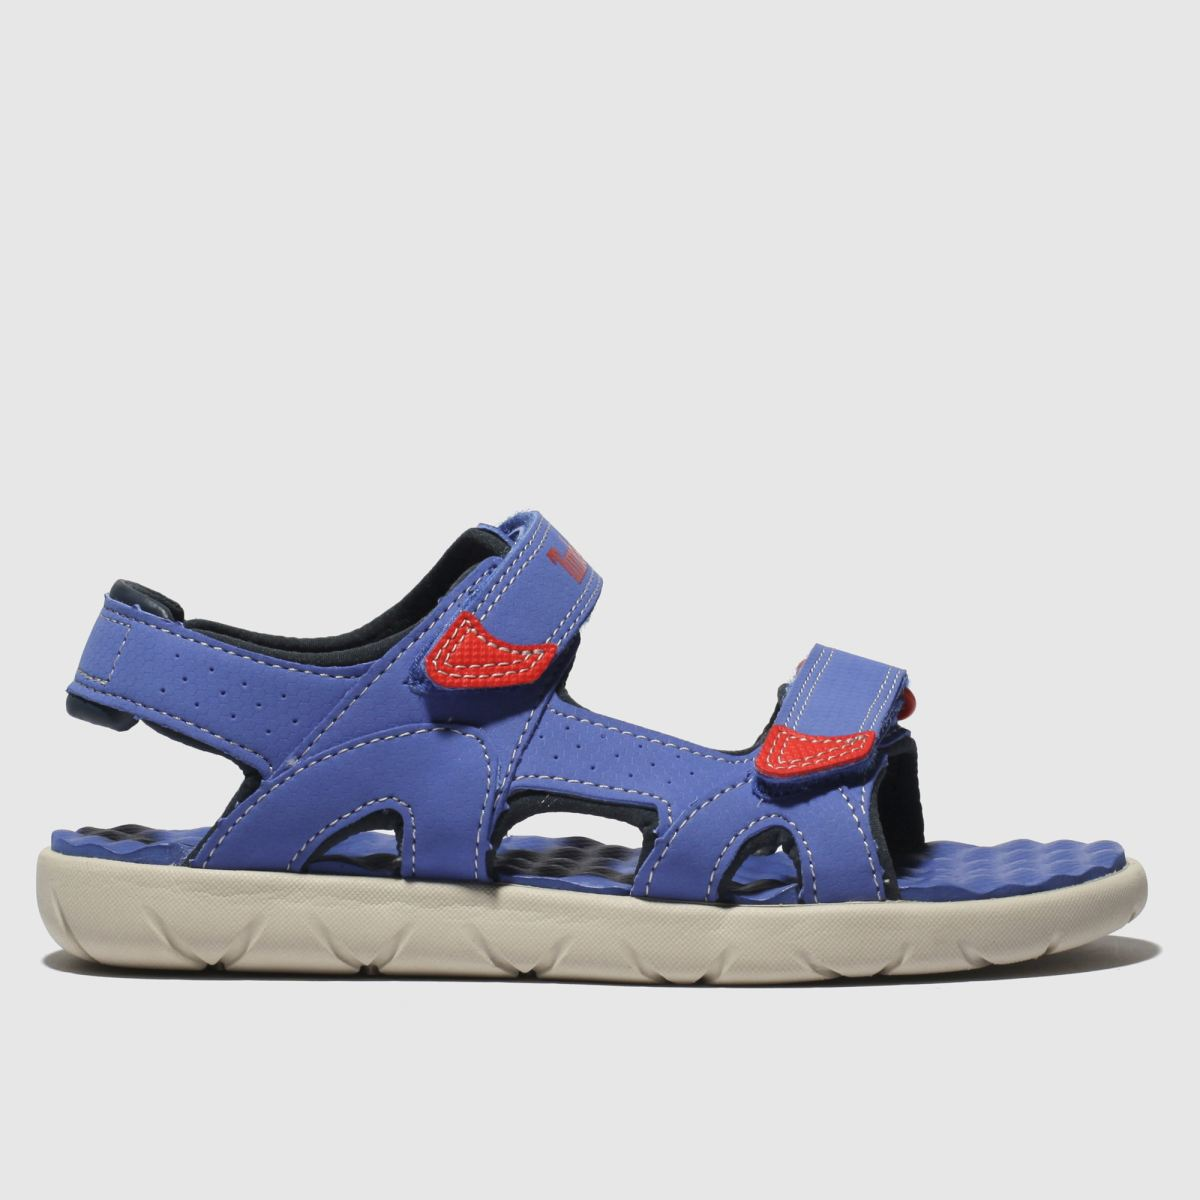 Timberland Blue Perkins Row Trainers Toddler